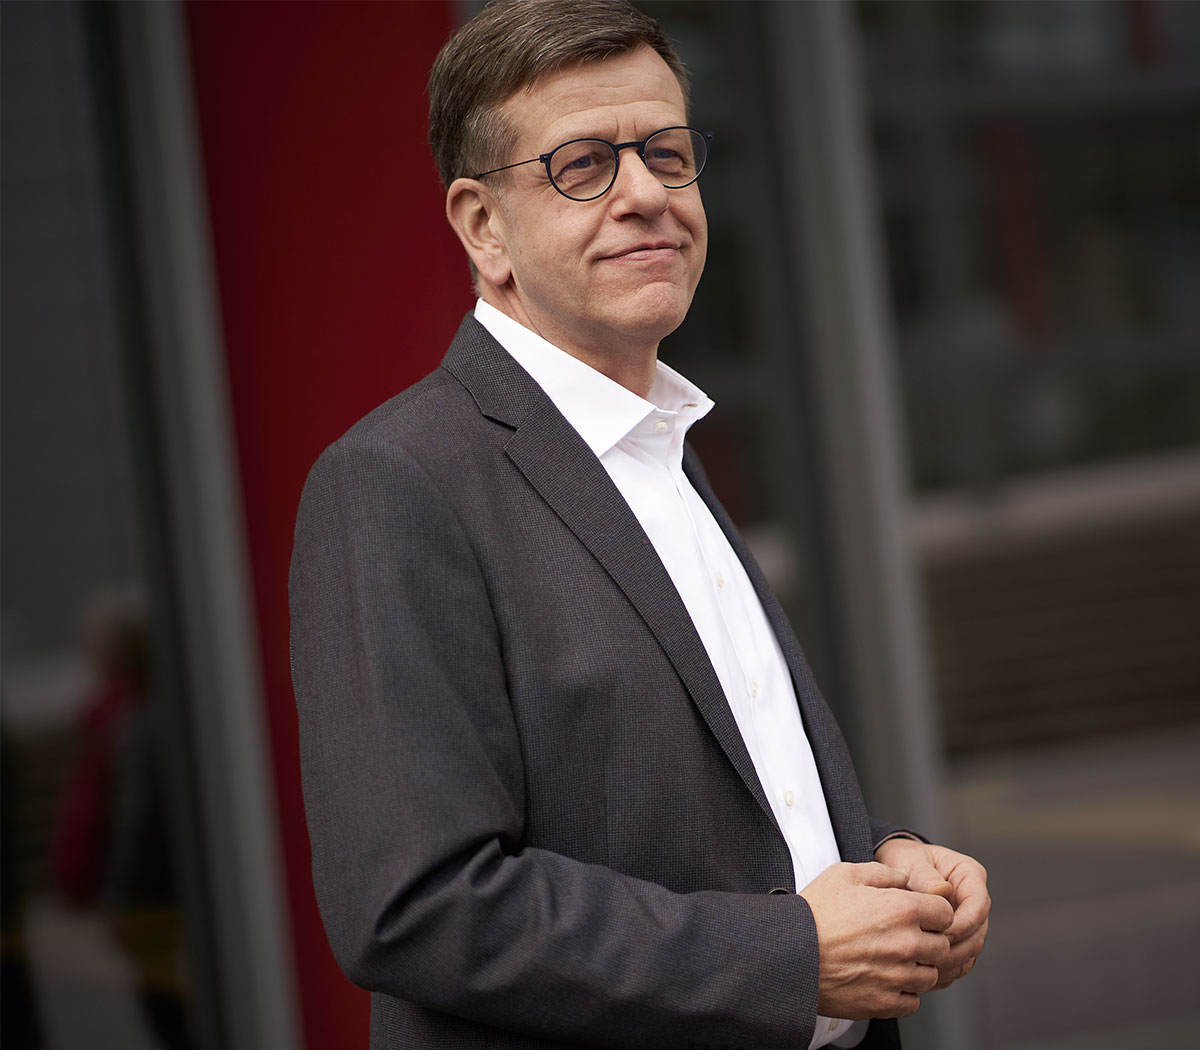 Dr. Andreas Siebe